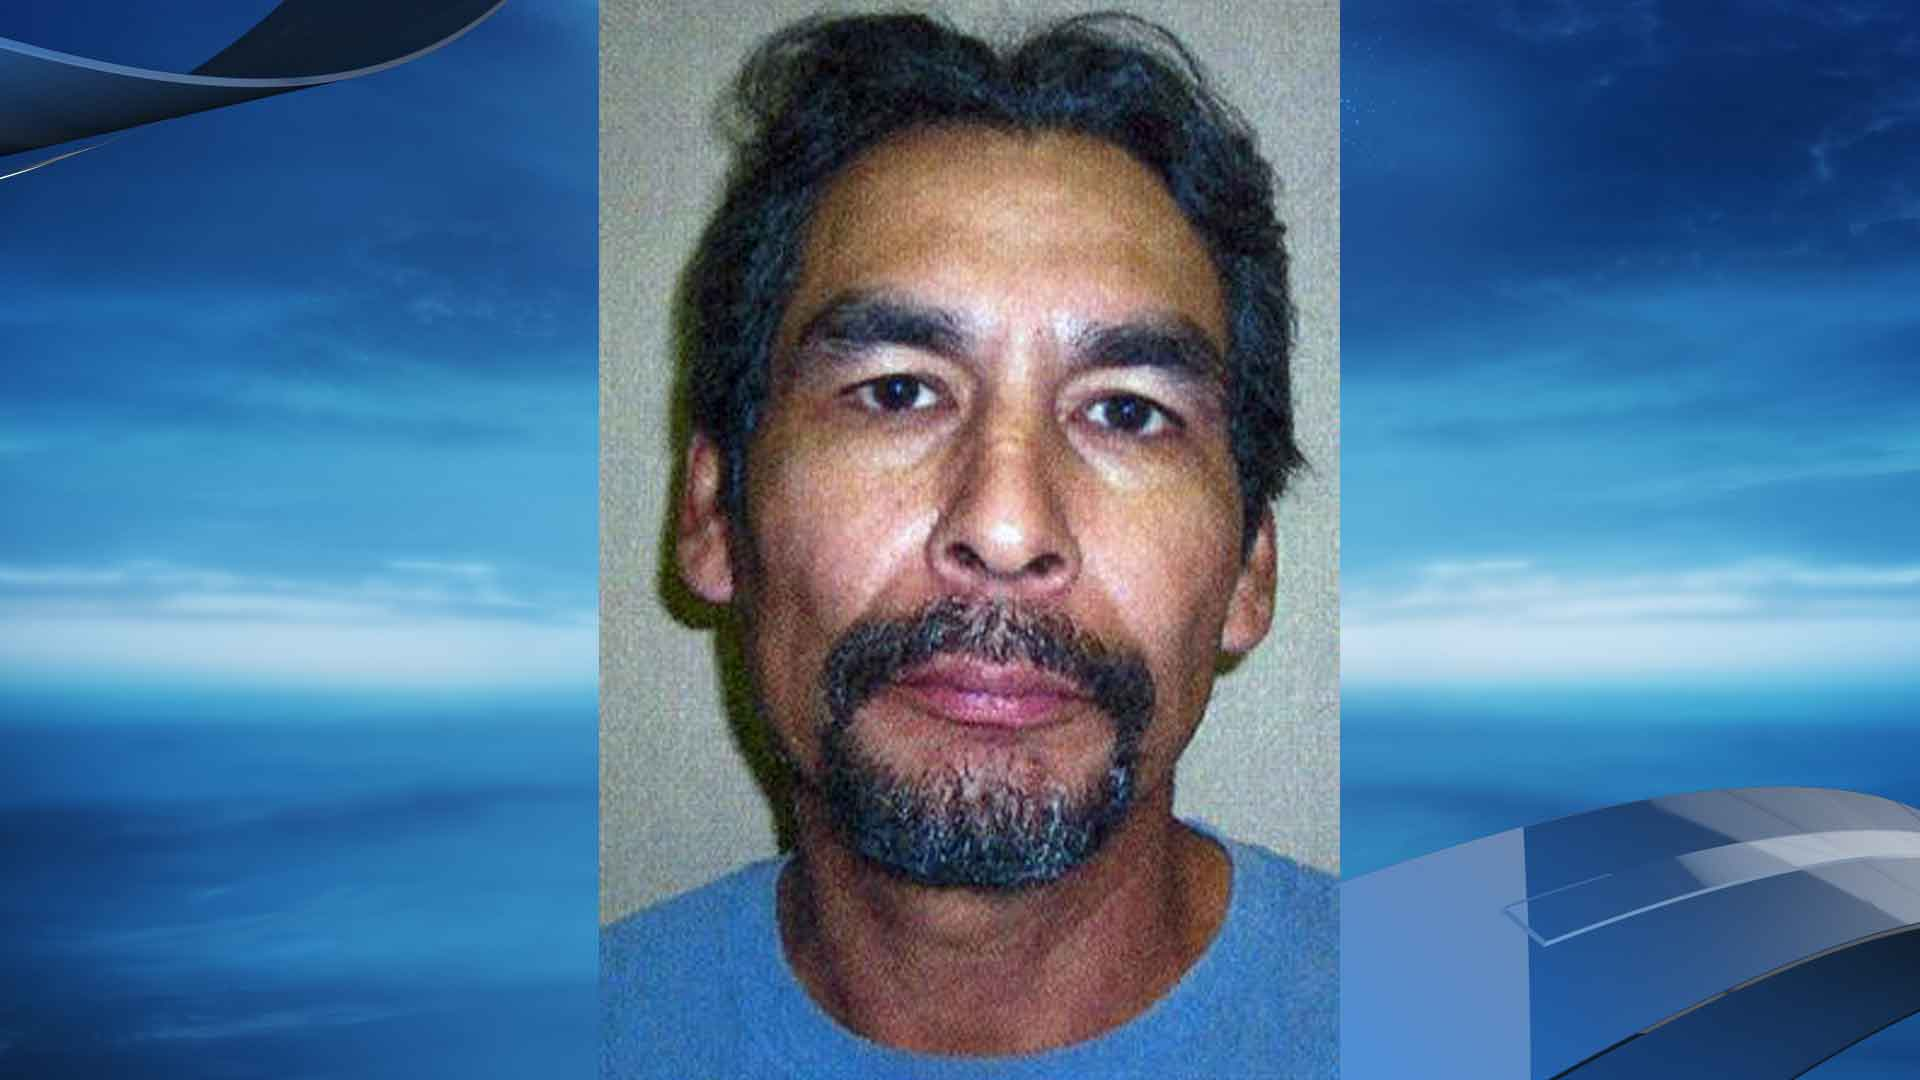 Authorities are searching for a man with a history of sexually abusing children, and now he's failed to register with the state for the third time. Gabriel Melchor, 51, has been on the run since August 2017. (Photo courtesy: Lone Star Fugitive Task Force)